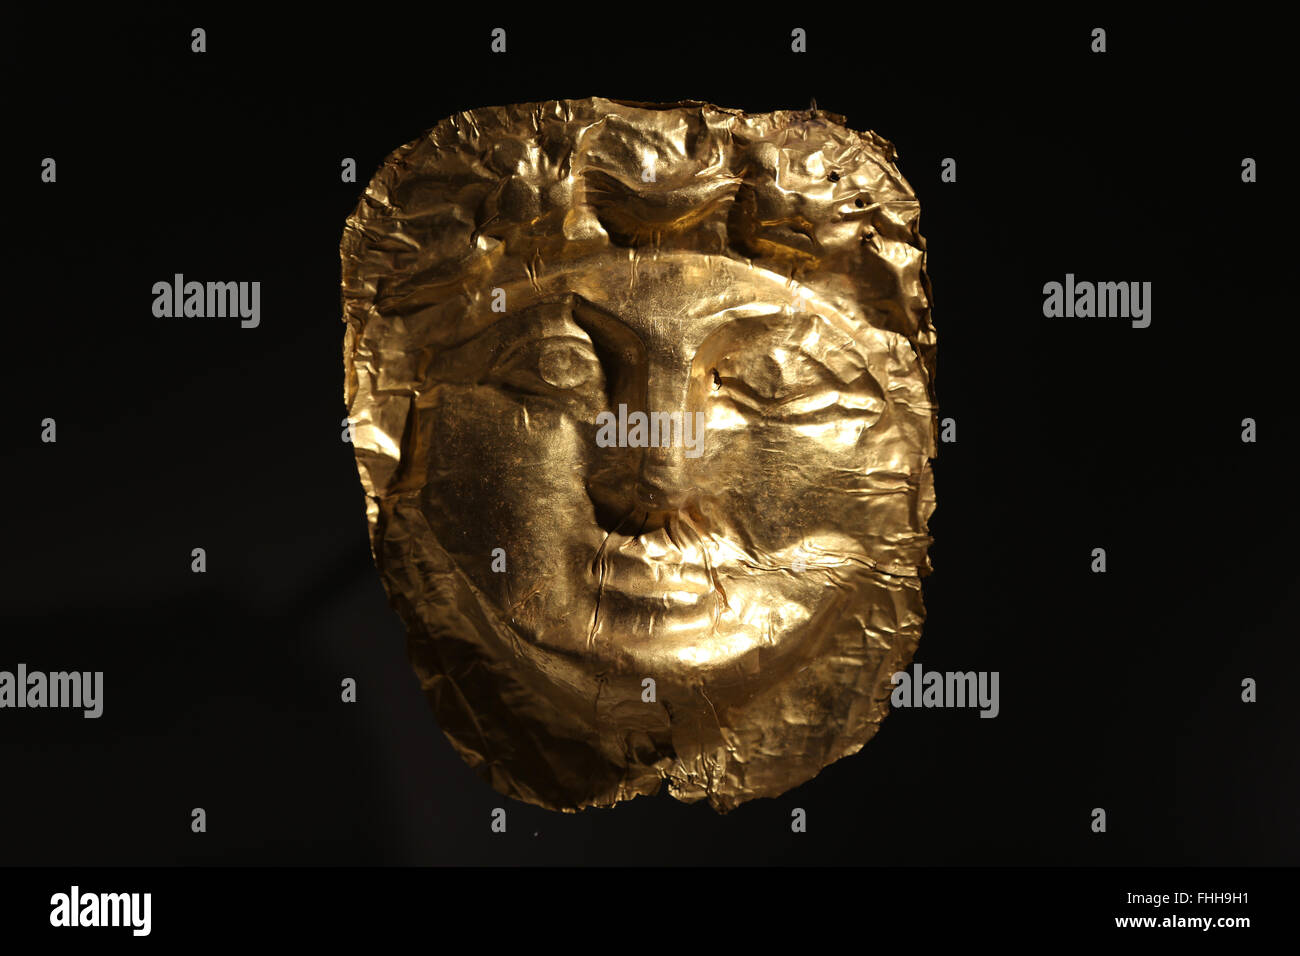 Funerary practices. Eastern provinces of Roman Empire. Near Eastern. Gold mask. Levantine tombs. Imperial period. - Stock Image